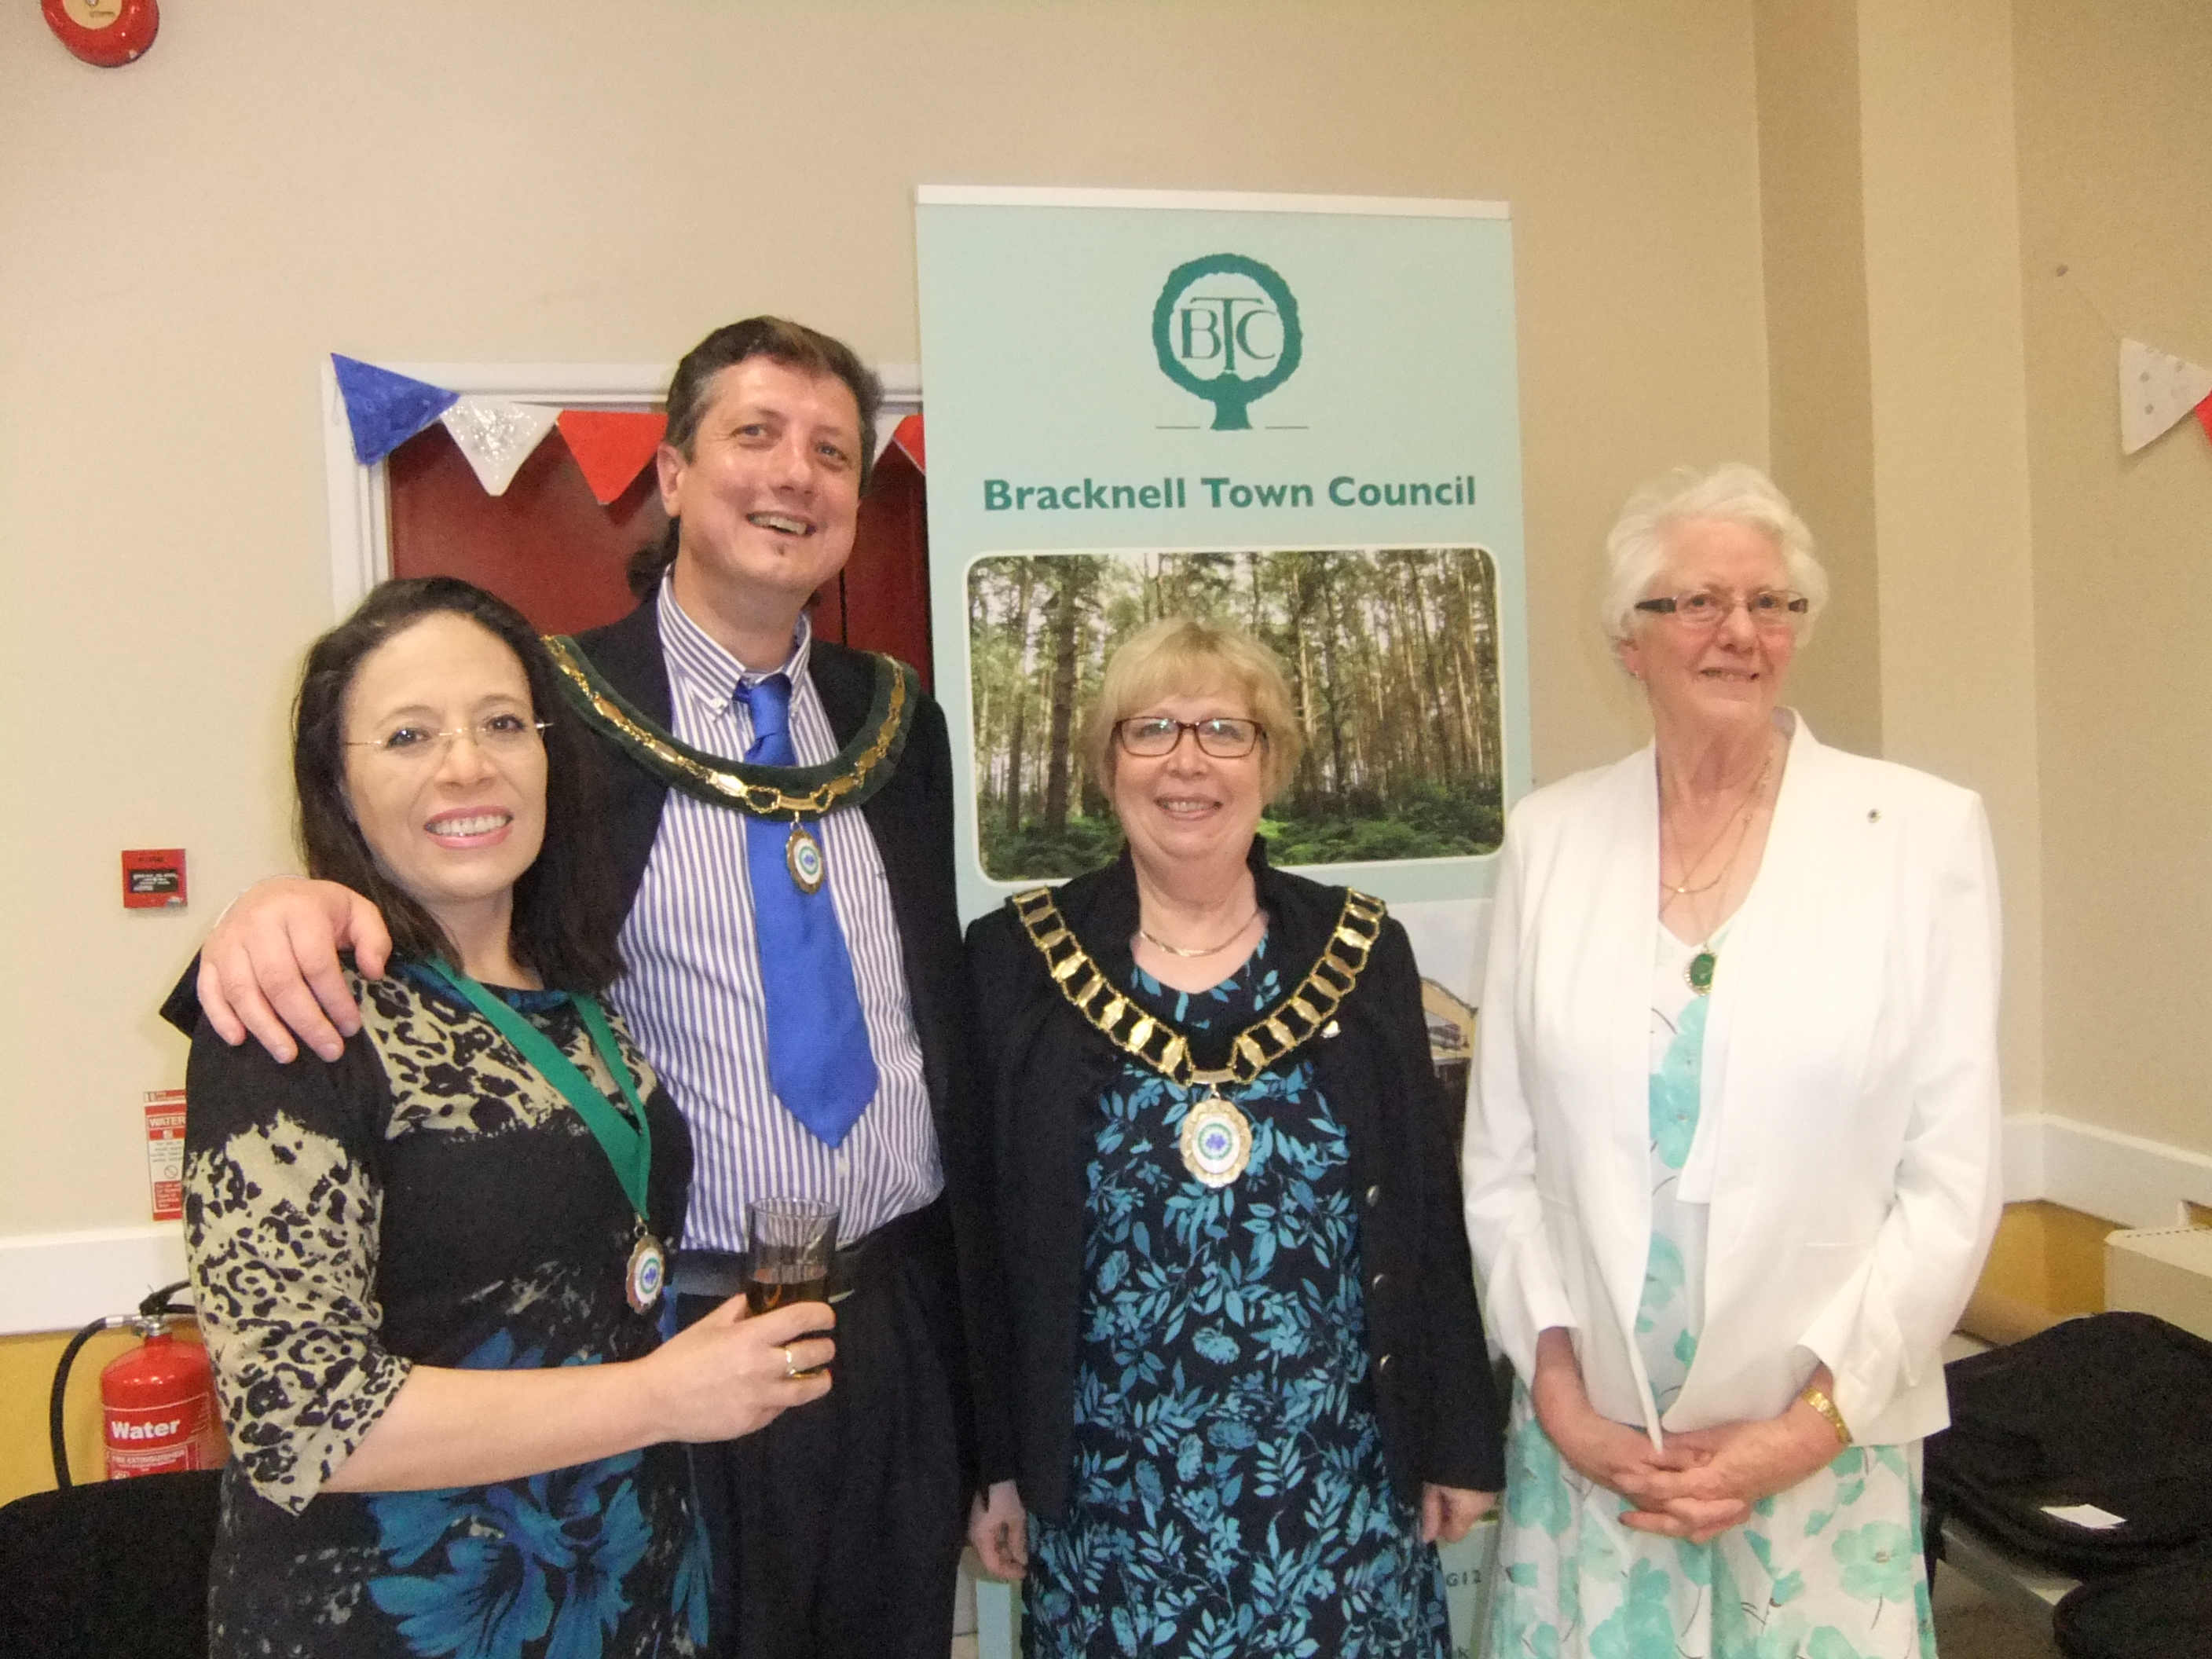 Bracknell Town Council's AGM